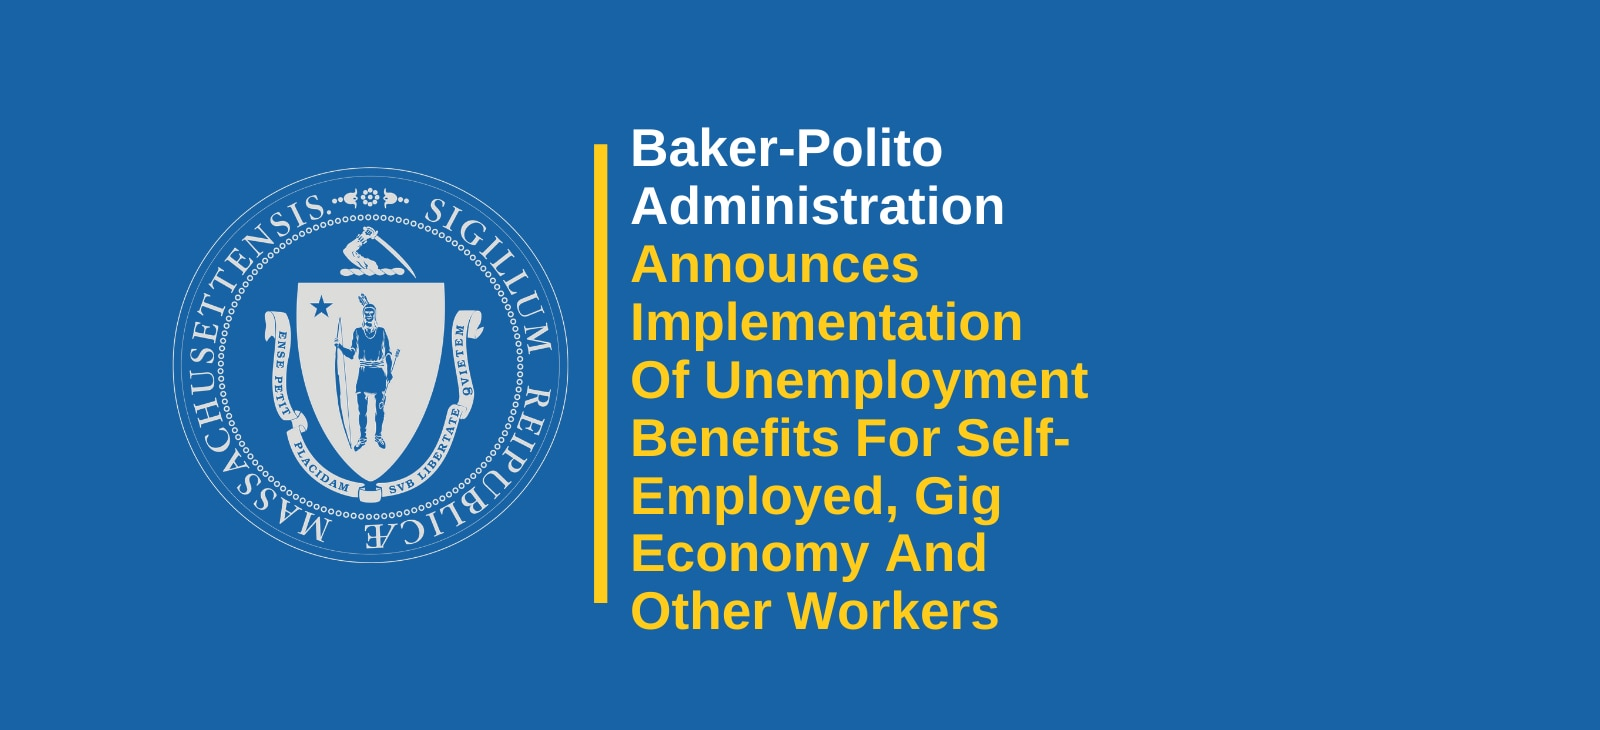 Baker-Polito Administration Announces Implementation Of CARES Act Unemployment Benefits For Self-Employed, Gig Economy And Other Workers